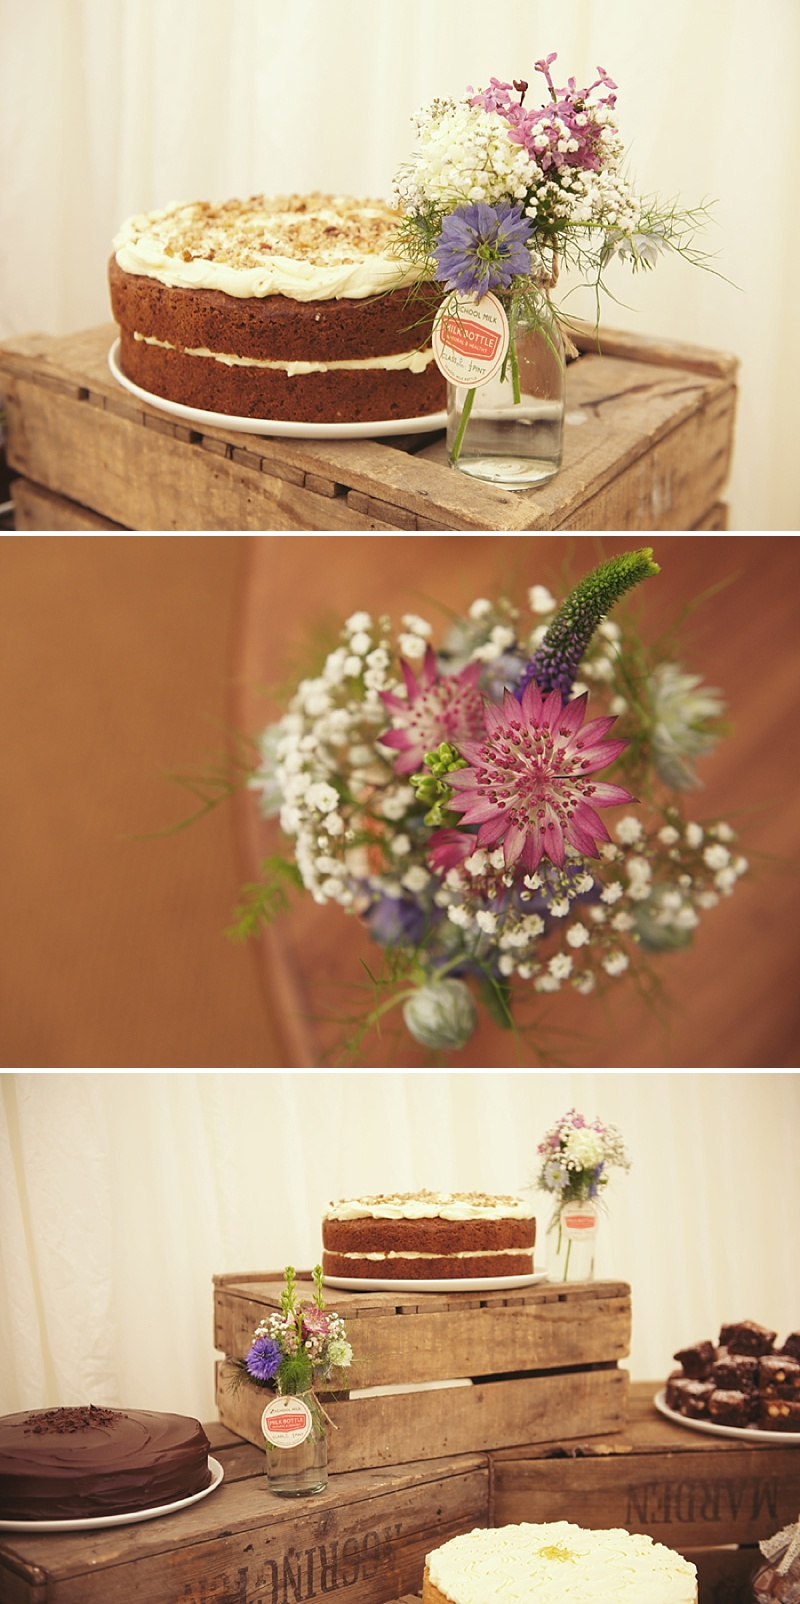 Garden Party Themed Wedding At The Secret Garden, Kent, Bride InTatyana Merenyuk, Images By Rebecca Douglas_0011